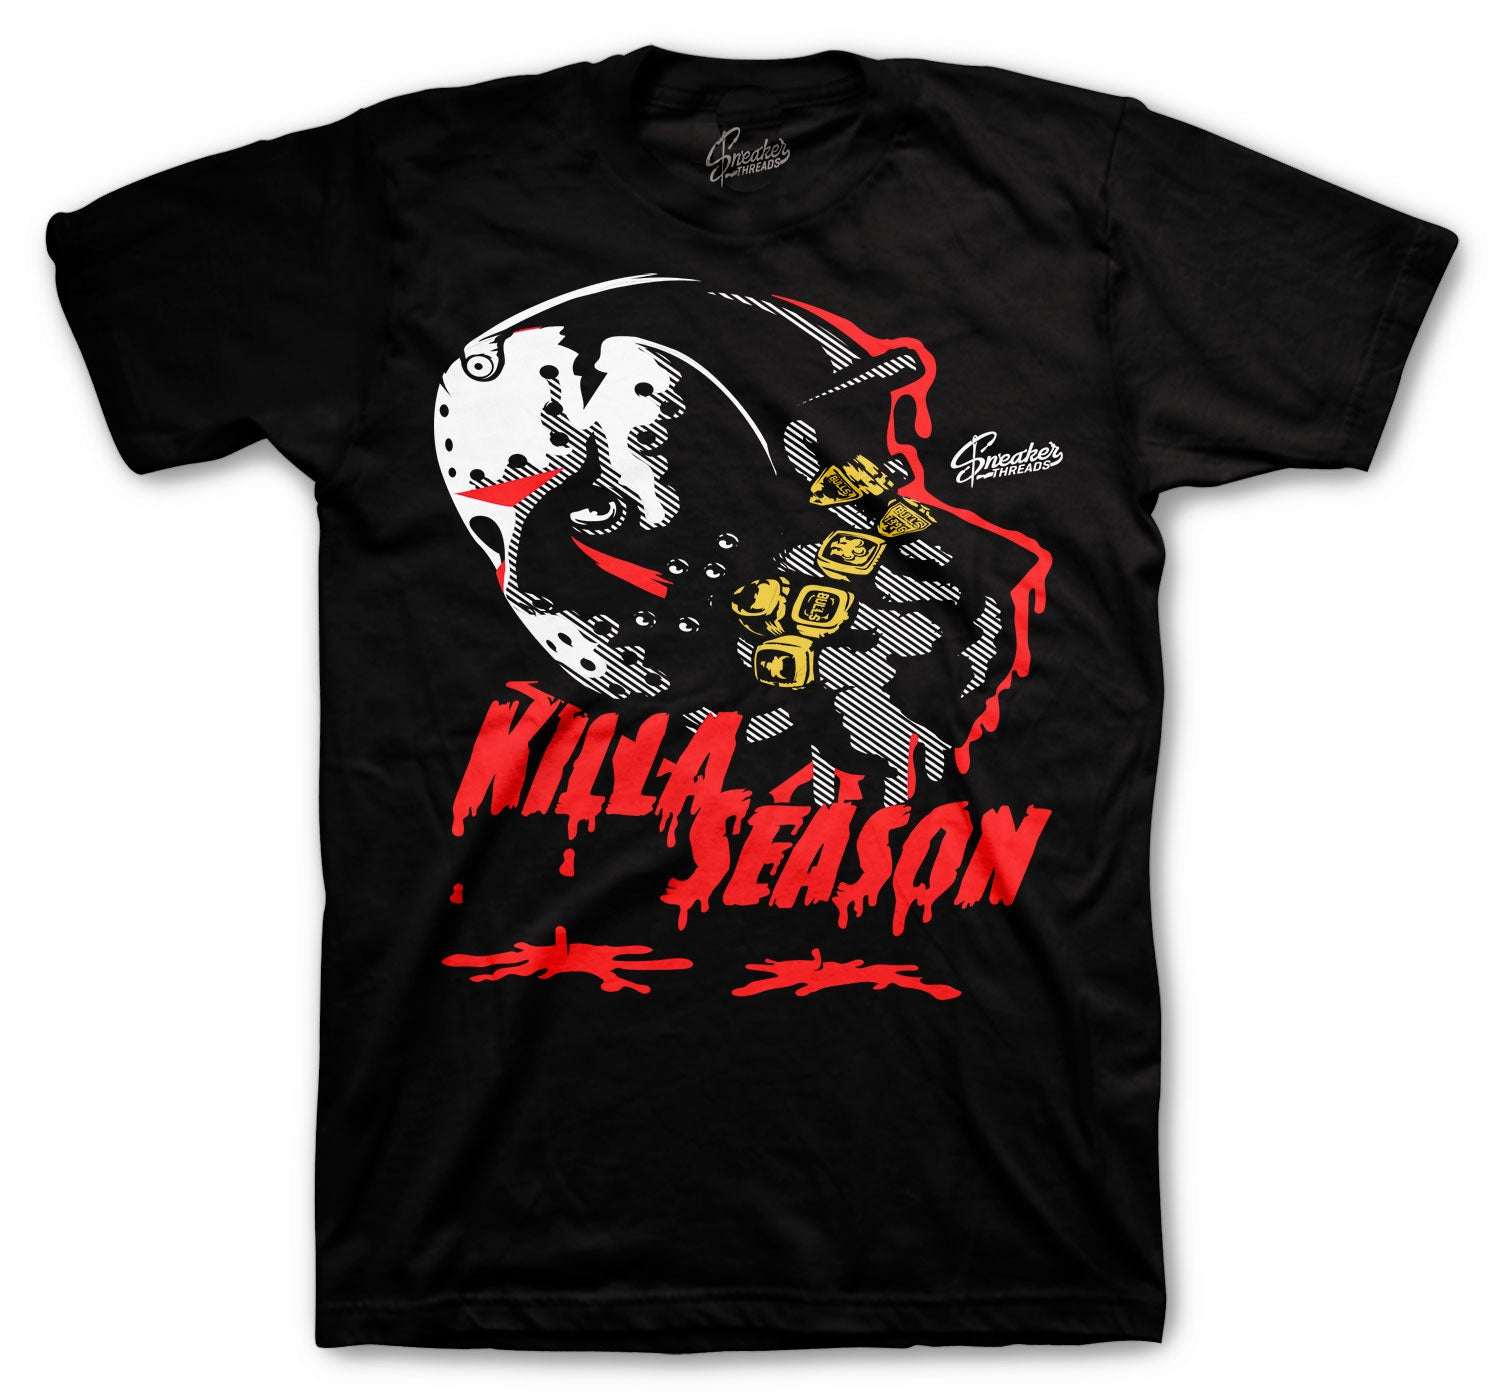 Dunk SB Chicago Killa Season Shirt